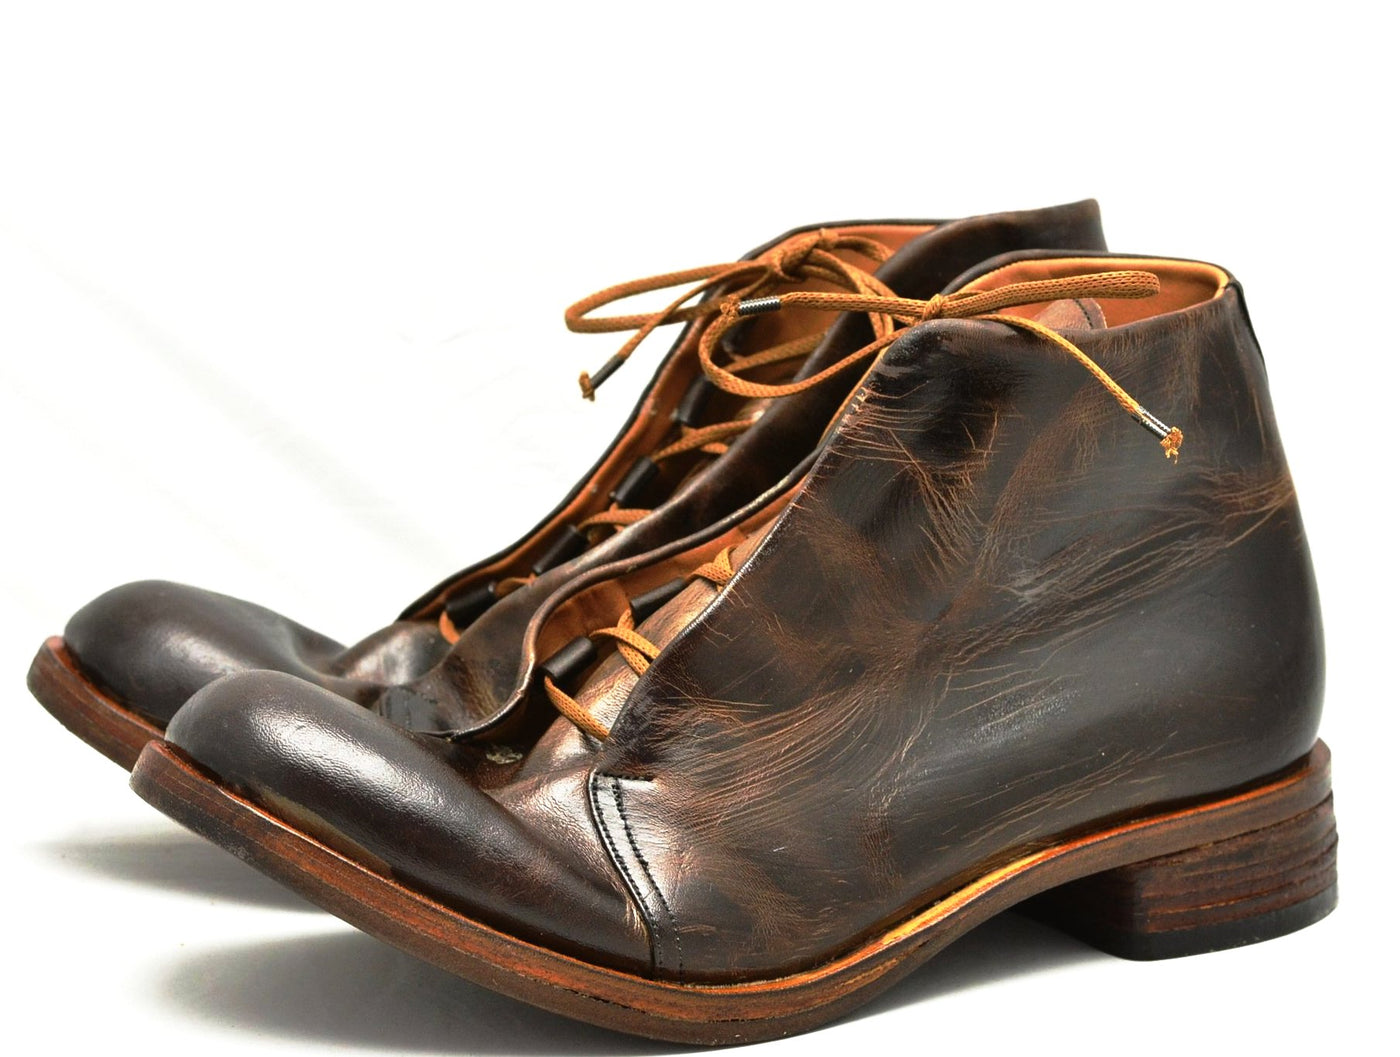 Asym derby boot  |  Burnt choc cordovan